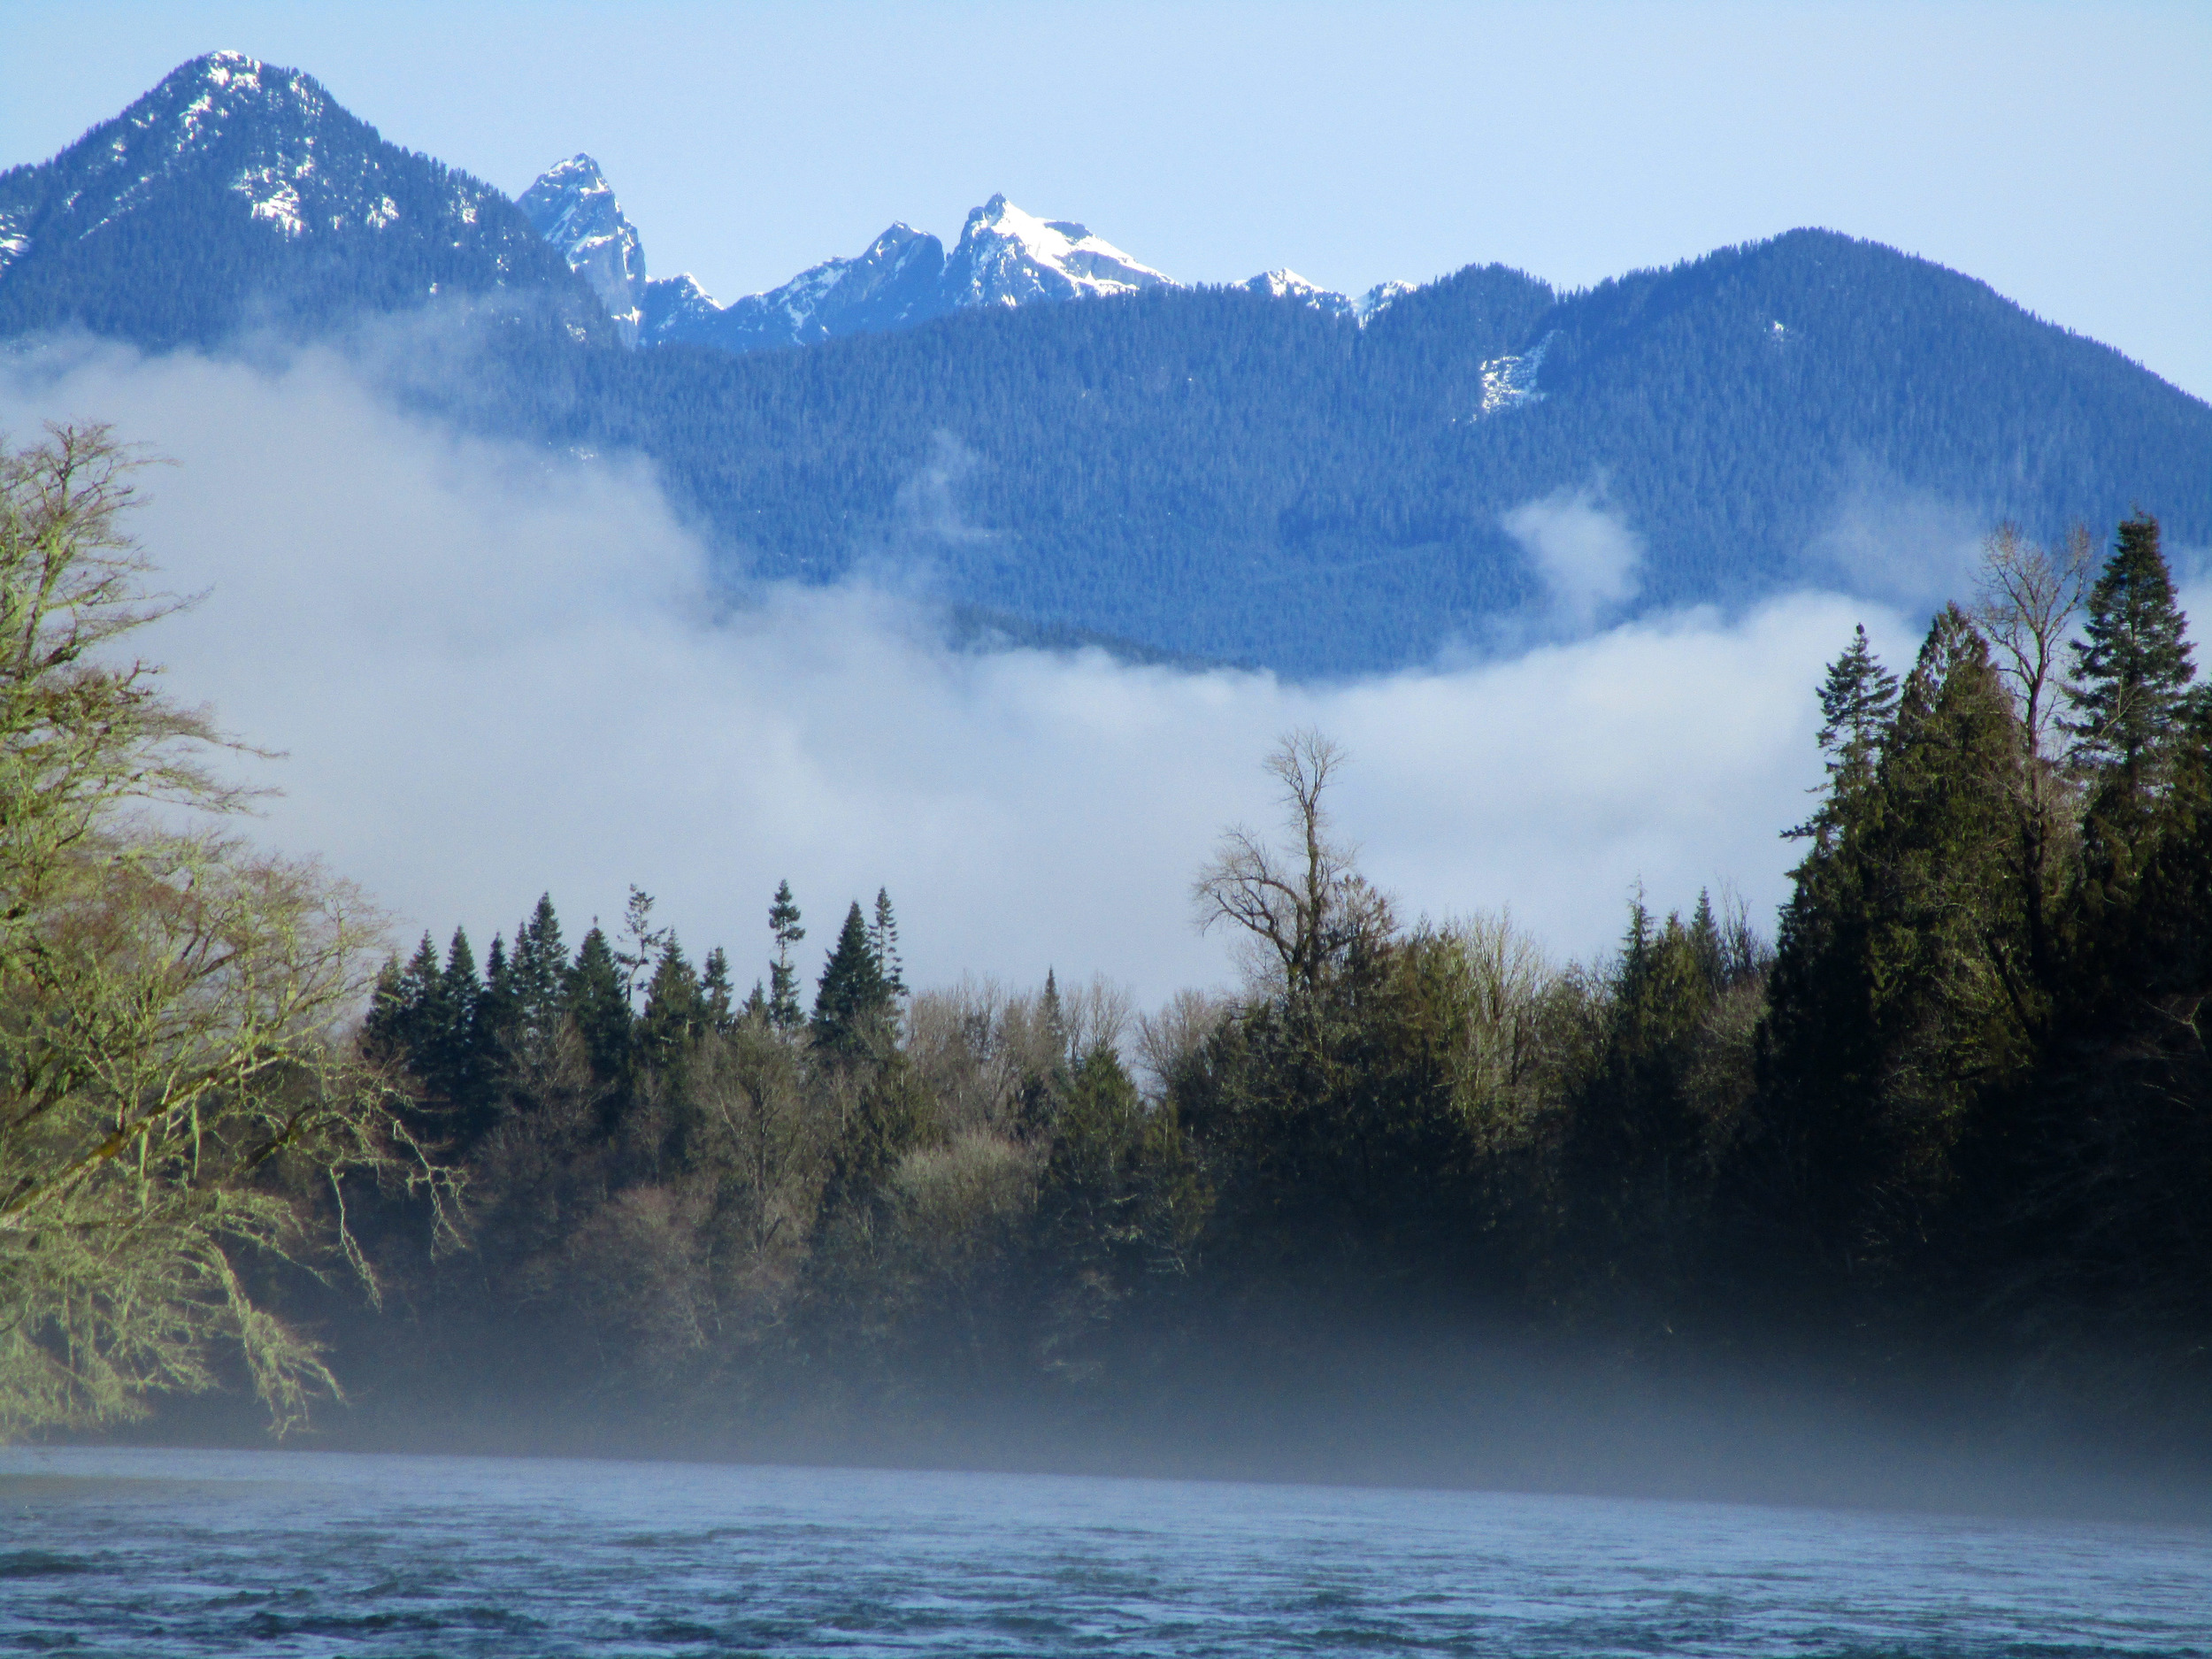 Photo of Skagit River during a Triad River Tours Eagle Watching trip courtesy of Firetalker PR, Seattle